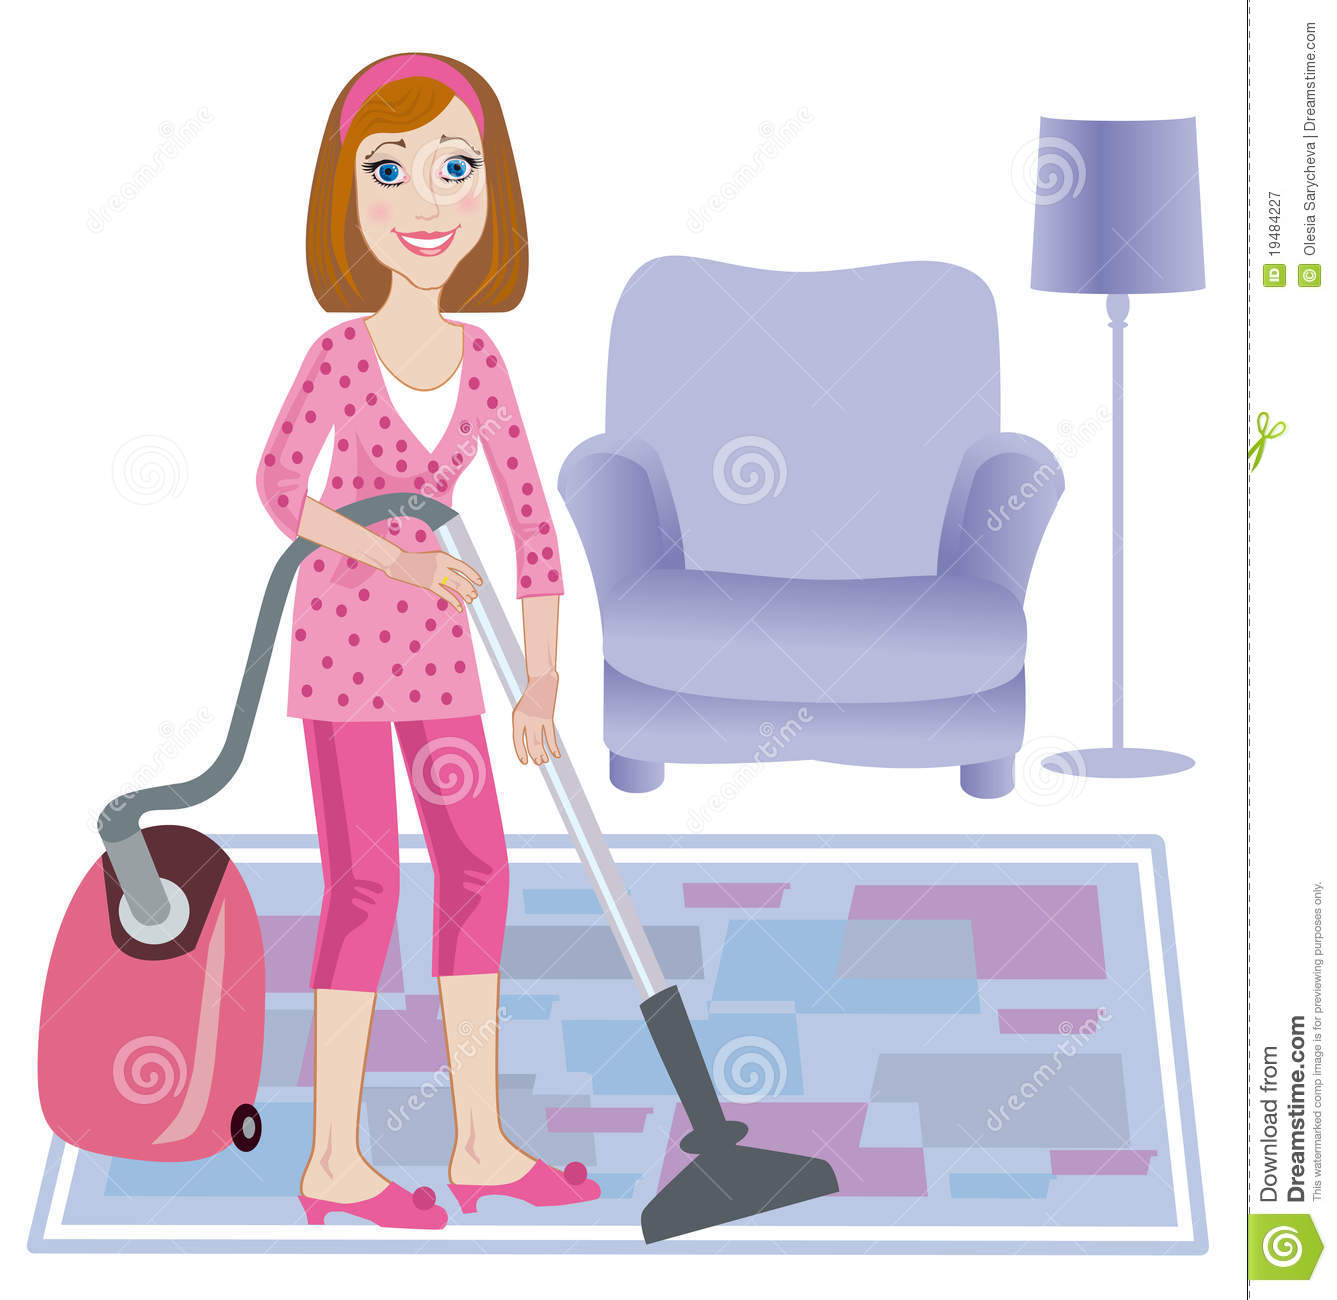 Cleaning Up Of Room Royalty Free Stock Photography Image